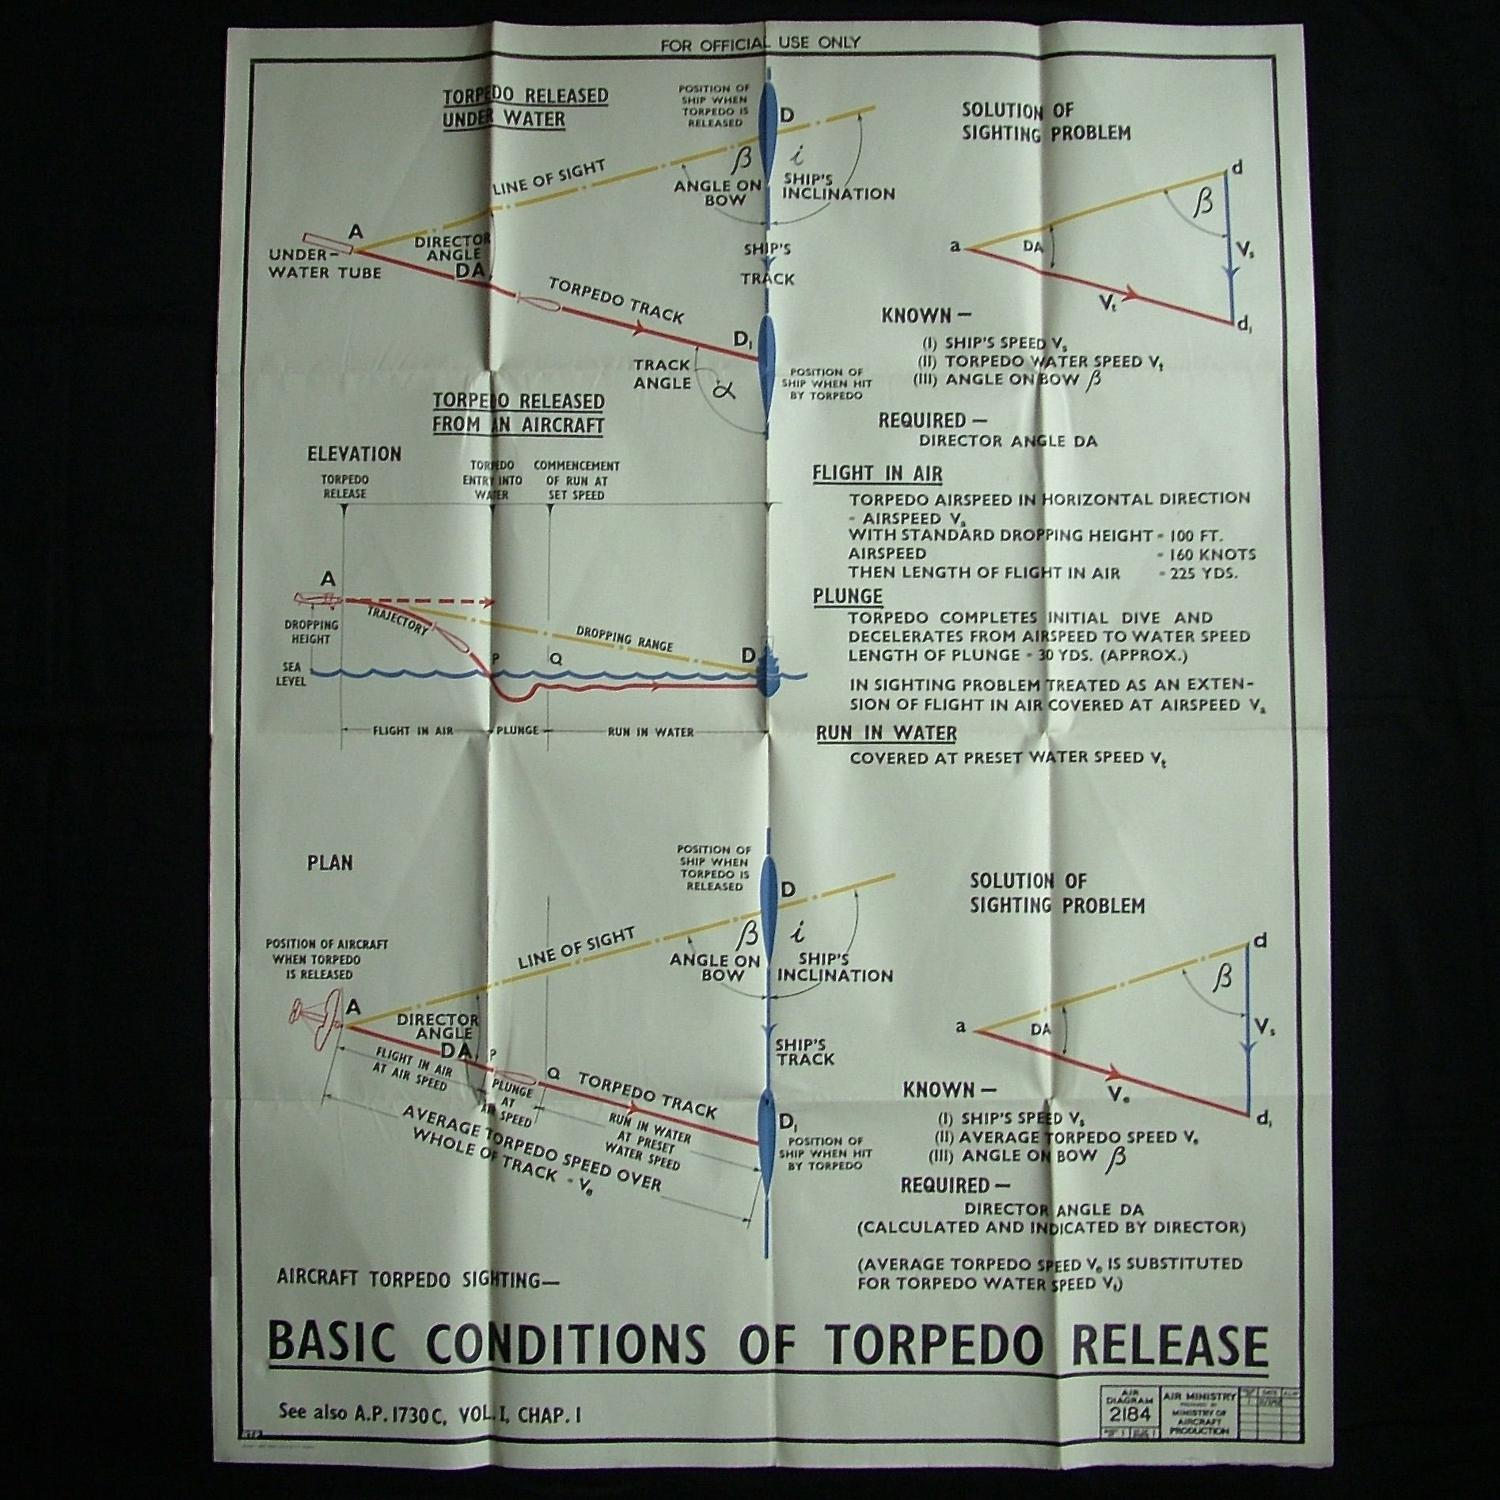 RAF Air Diagram - Condition Of Torpedo Release, 1942